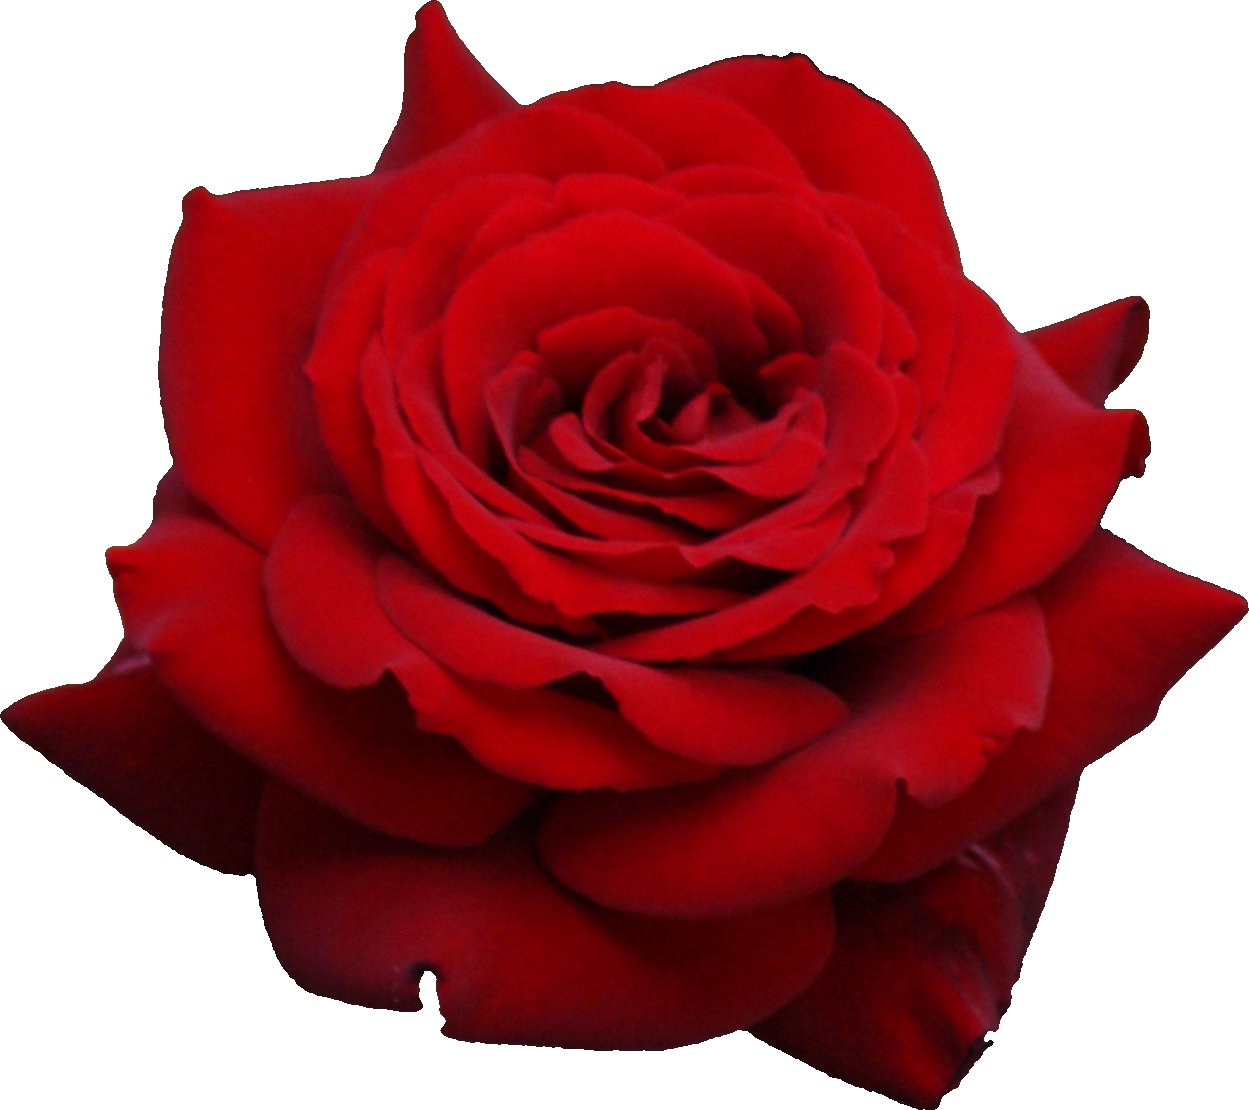 Rose flower images free. Roses png clipart free stock